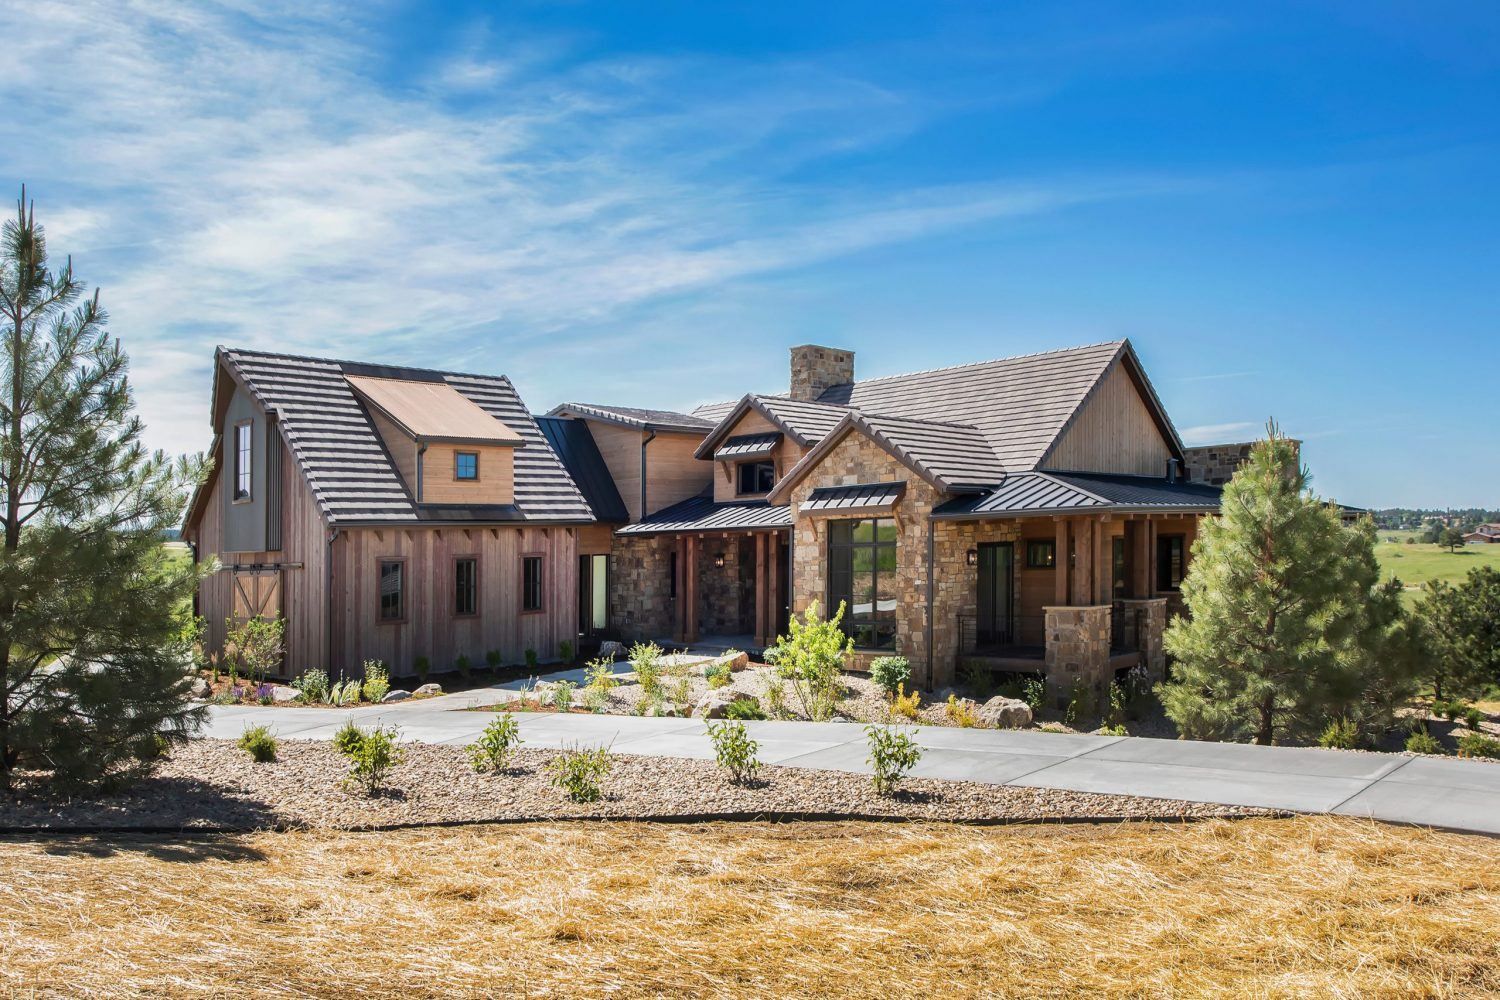 mountain modern home in Colorado designed by Godden Sudik architects with reclaimed wood siding